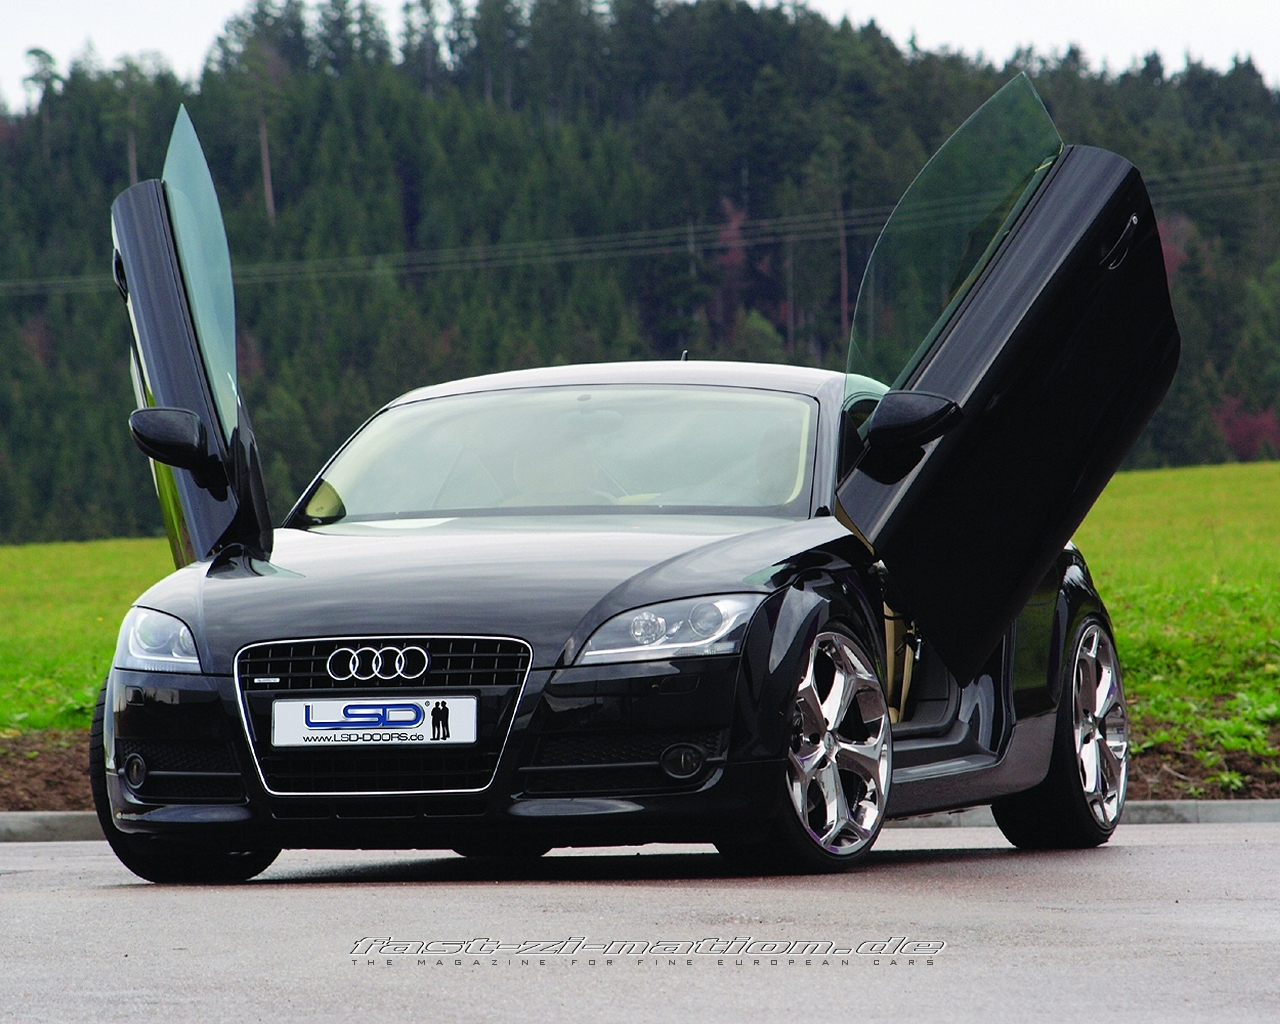 Audi TT with LSD Scissor Doors (front-left view) - desktop wallpaper in 1280x1024